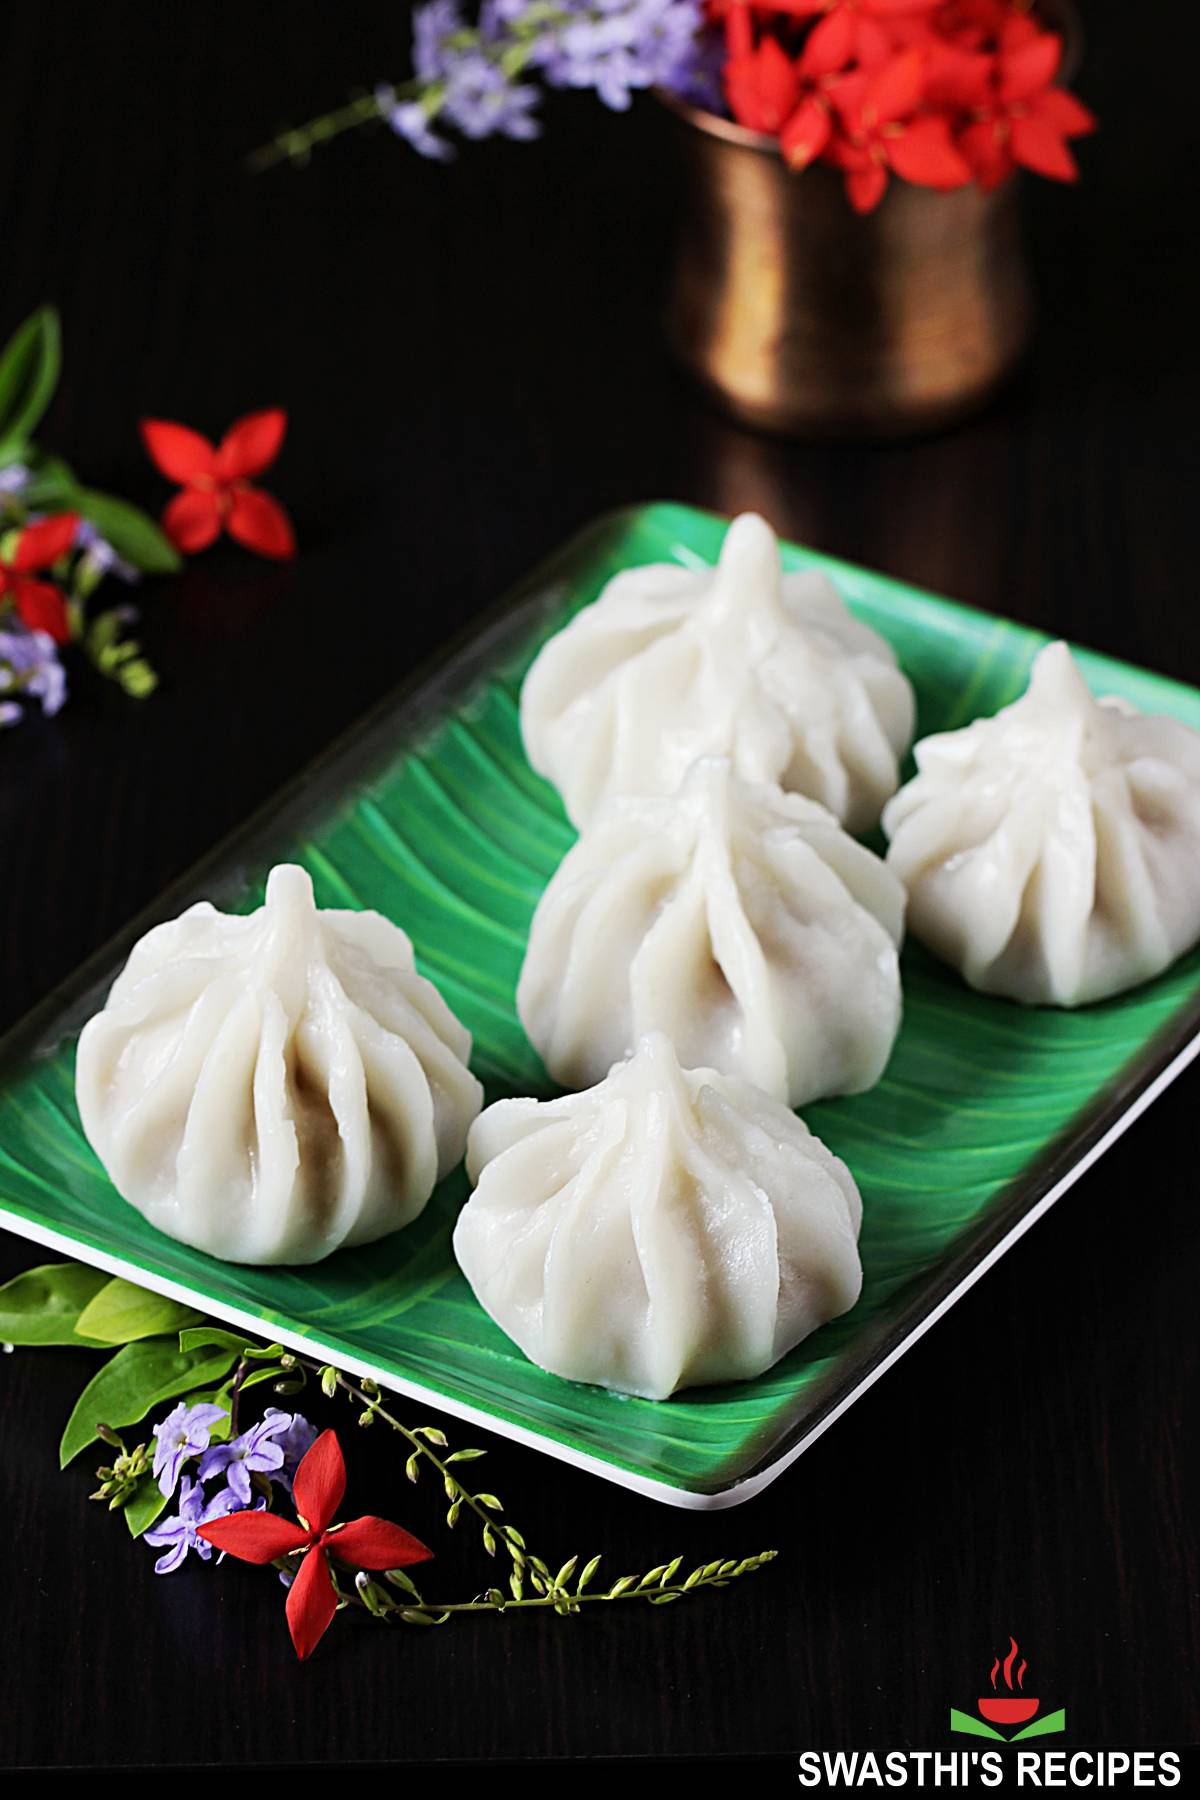 ukadiche modak offered in a green plate during Ganesh Chaturthi pooja